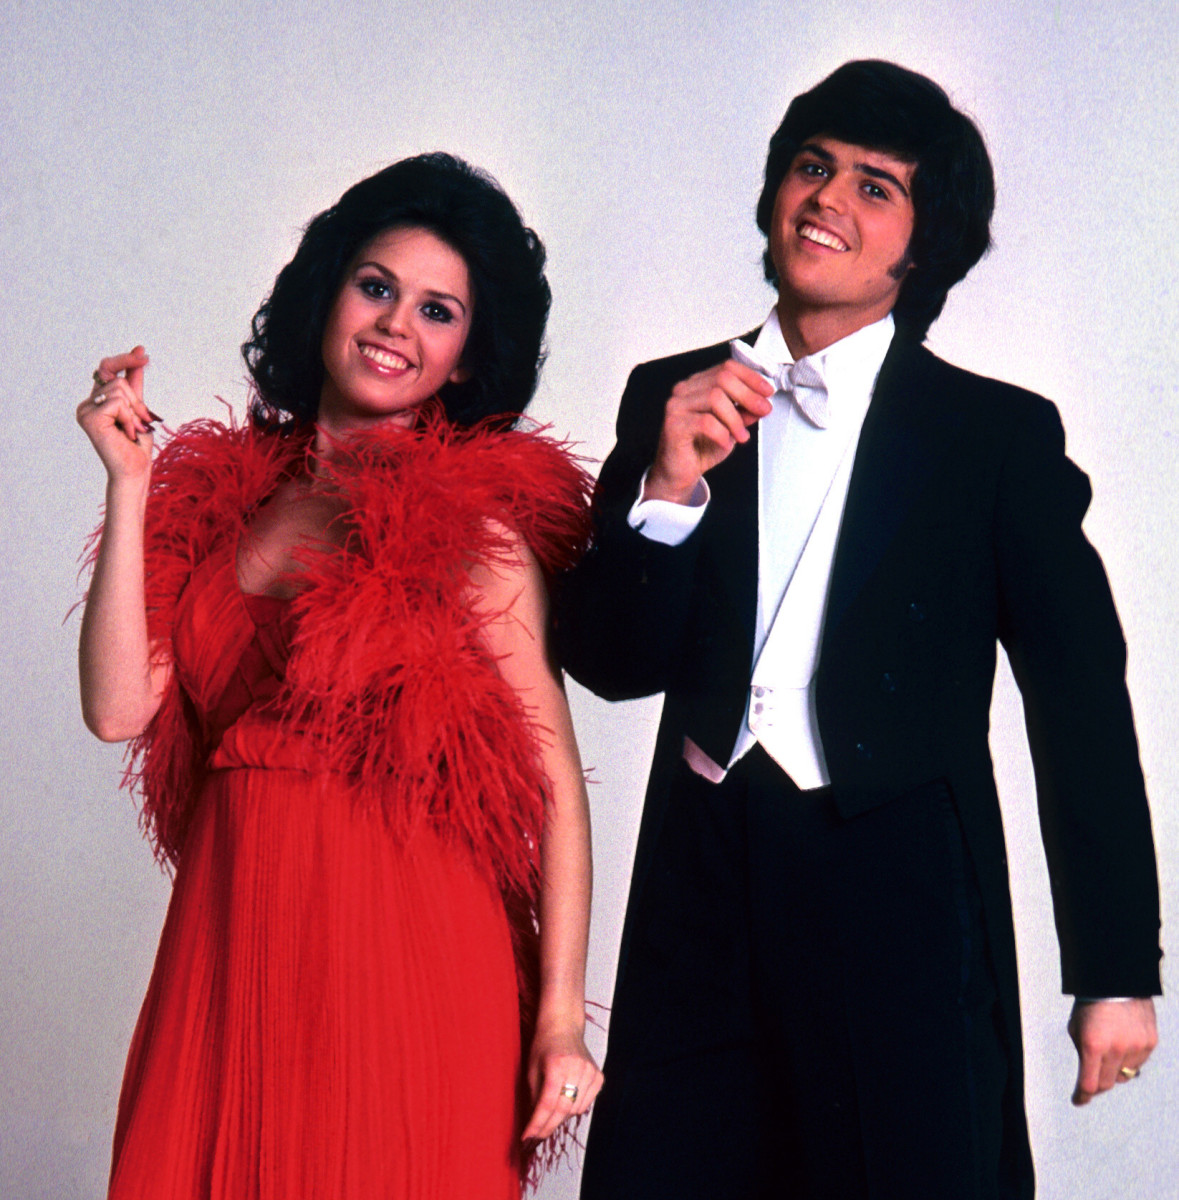 Donny and Marie Osmond Photo